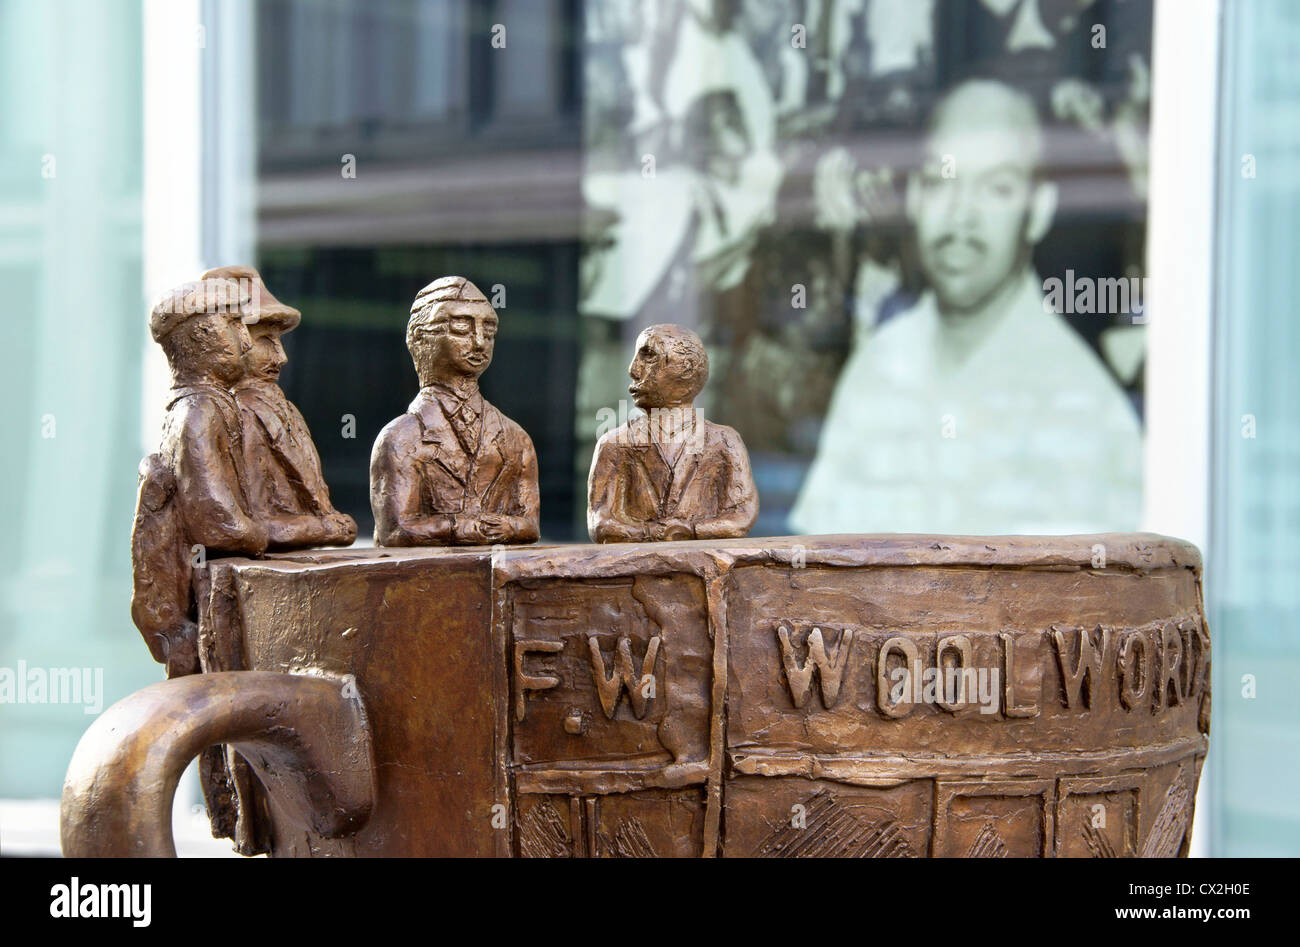 The Cup of Freedom statue of the Woolworth lunch counter sit-in, Greensboro, NC, North Carolina. - Stock Image